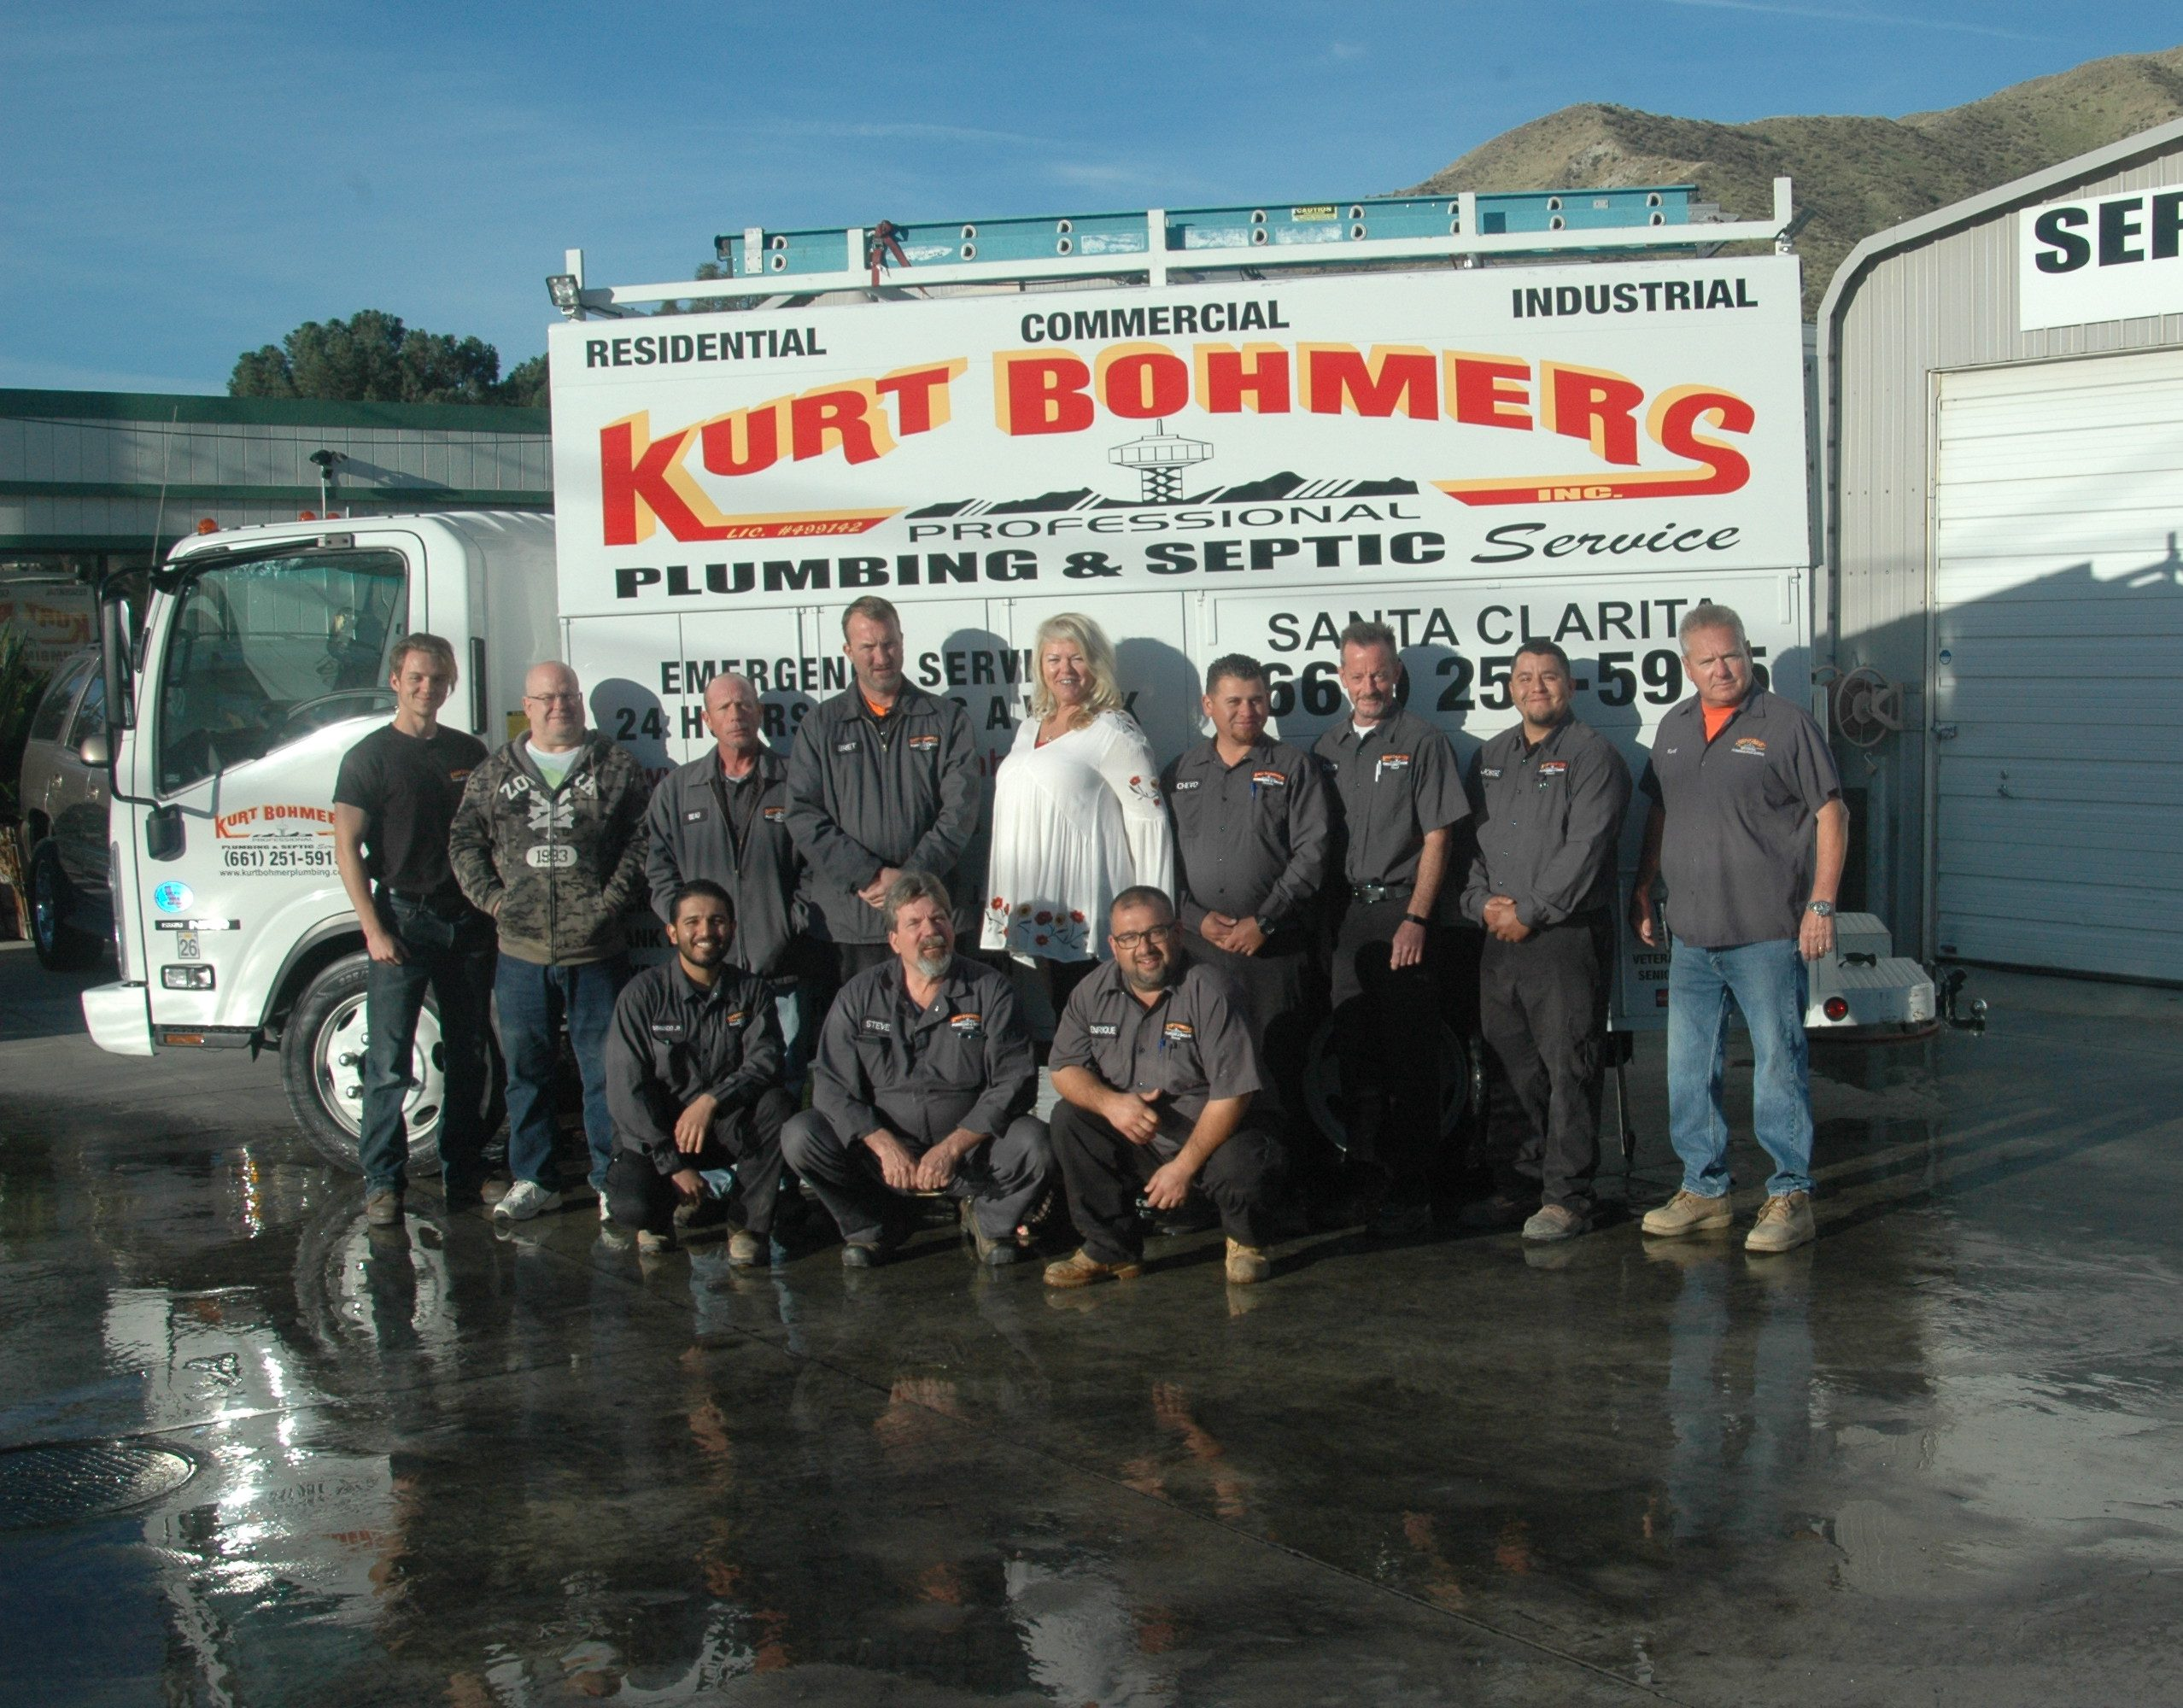 Kurt Bohmers Plumbing team photo standing in front of truck